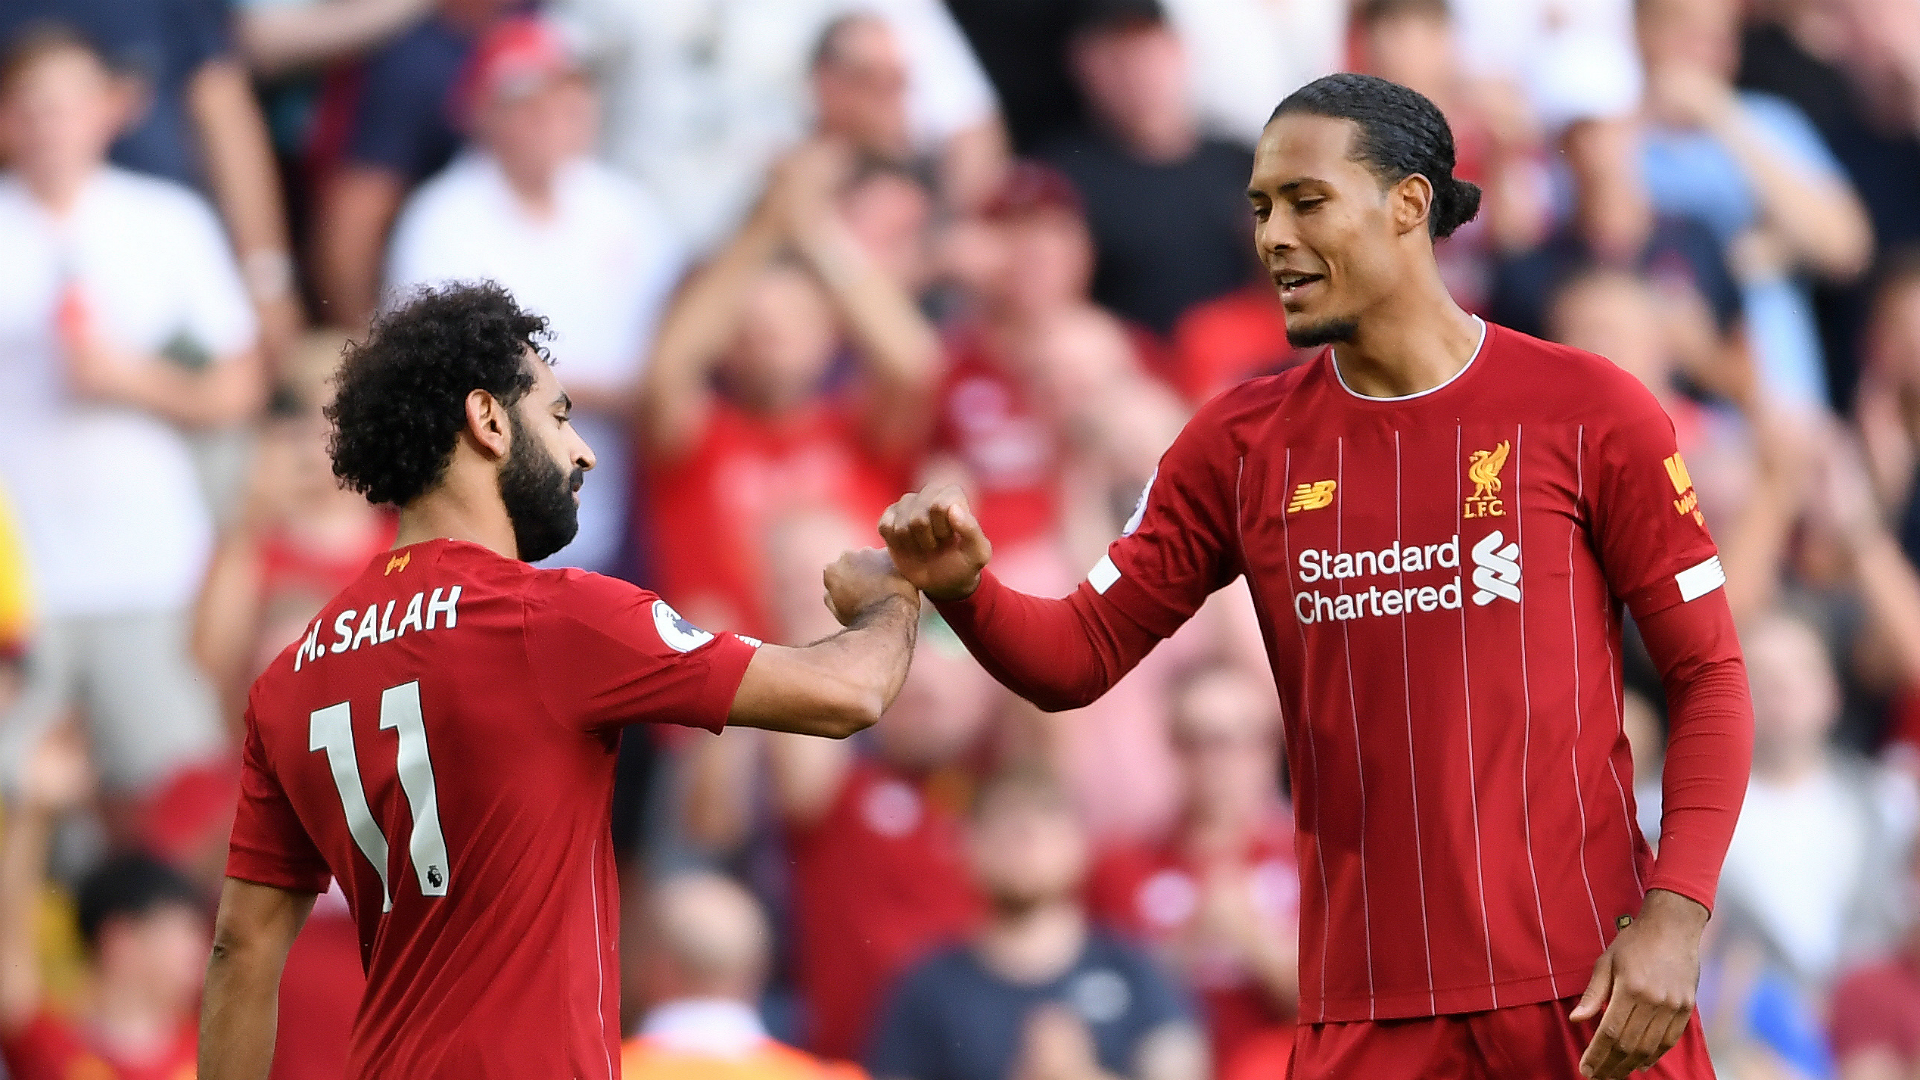 Rumour Has It: Liverpool prioritise Van Dijk deal over Salah, Man Utd close to Upamecano